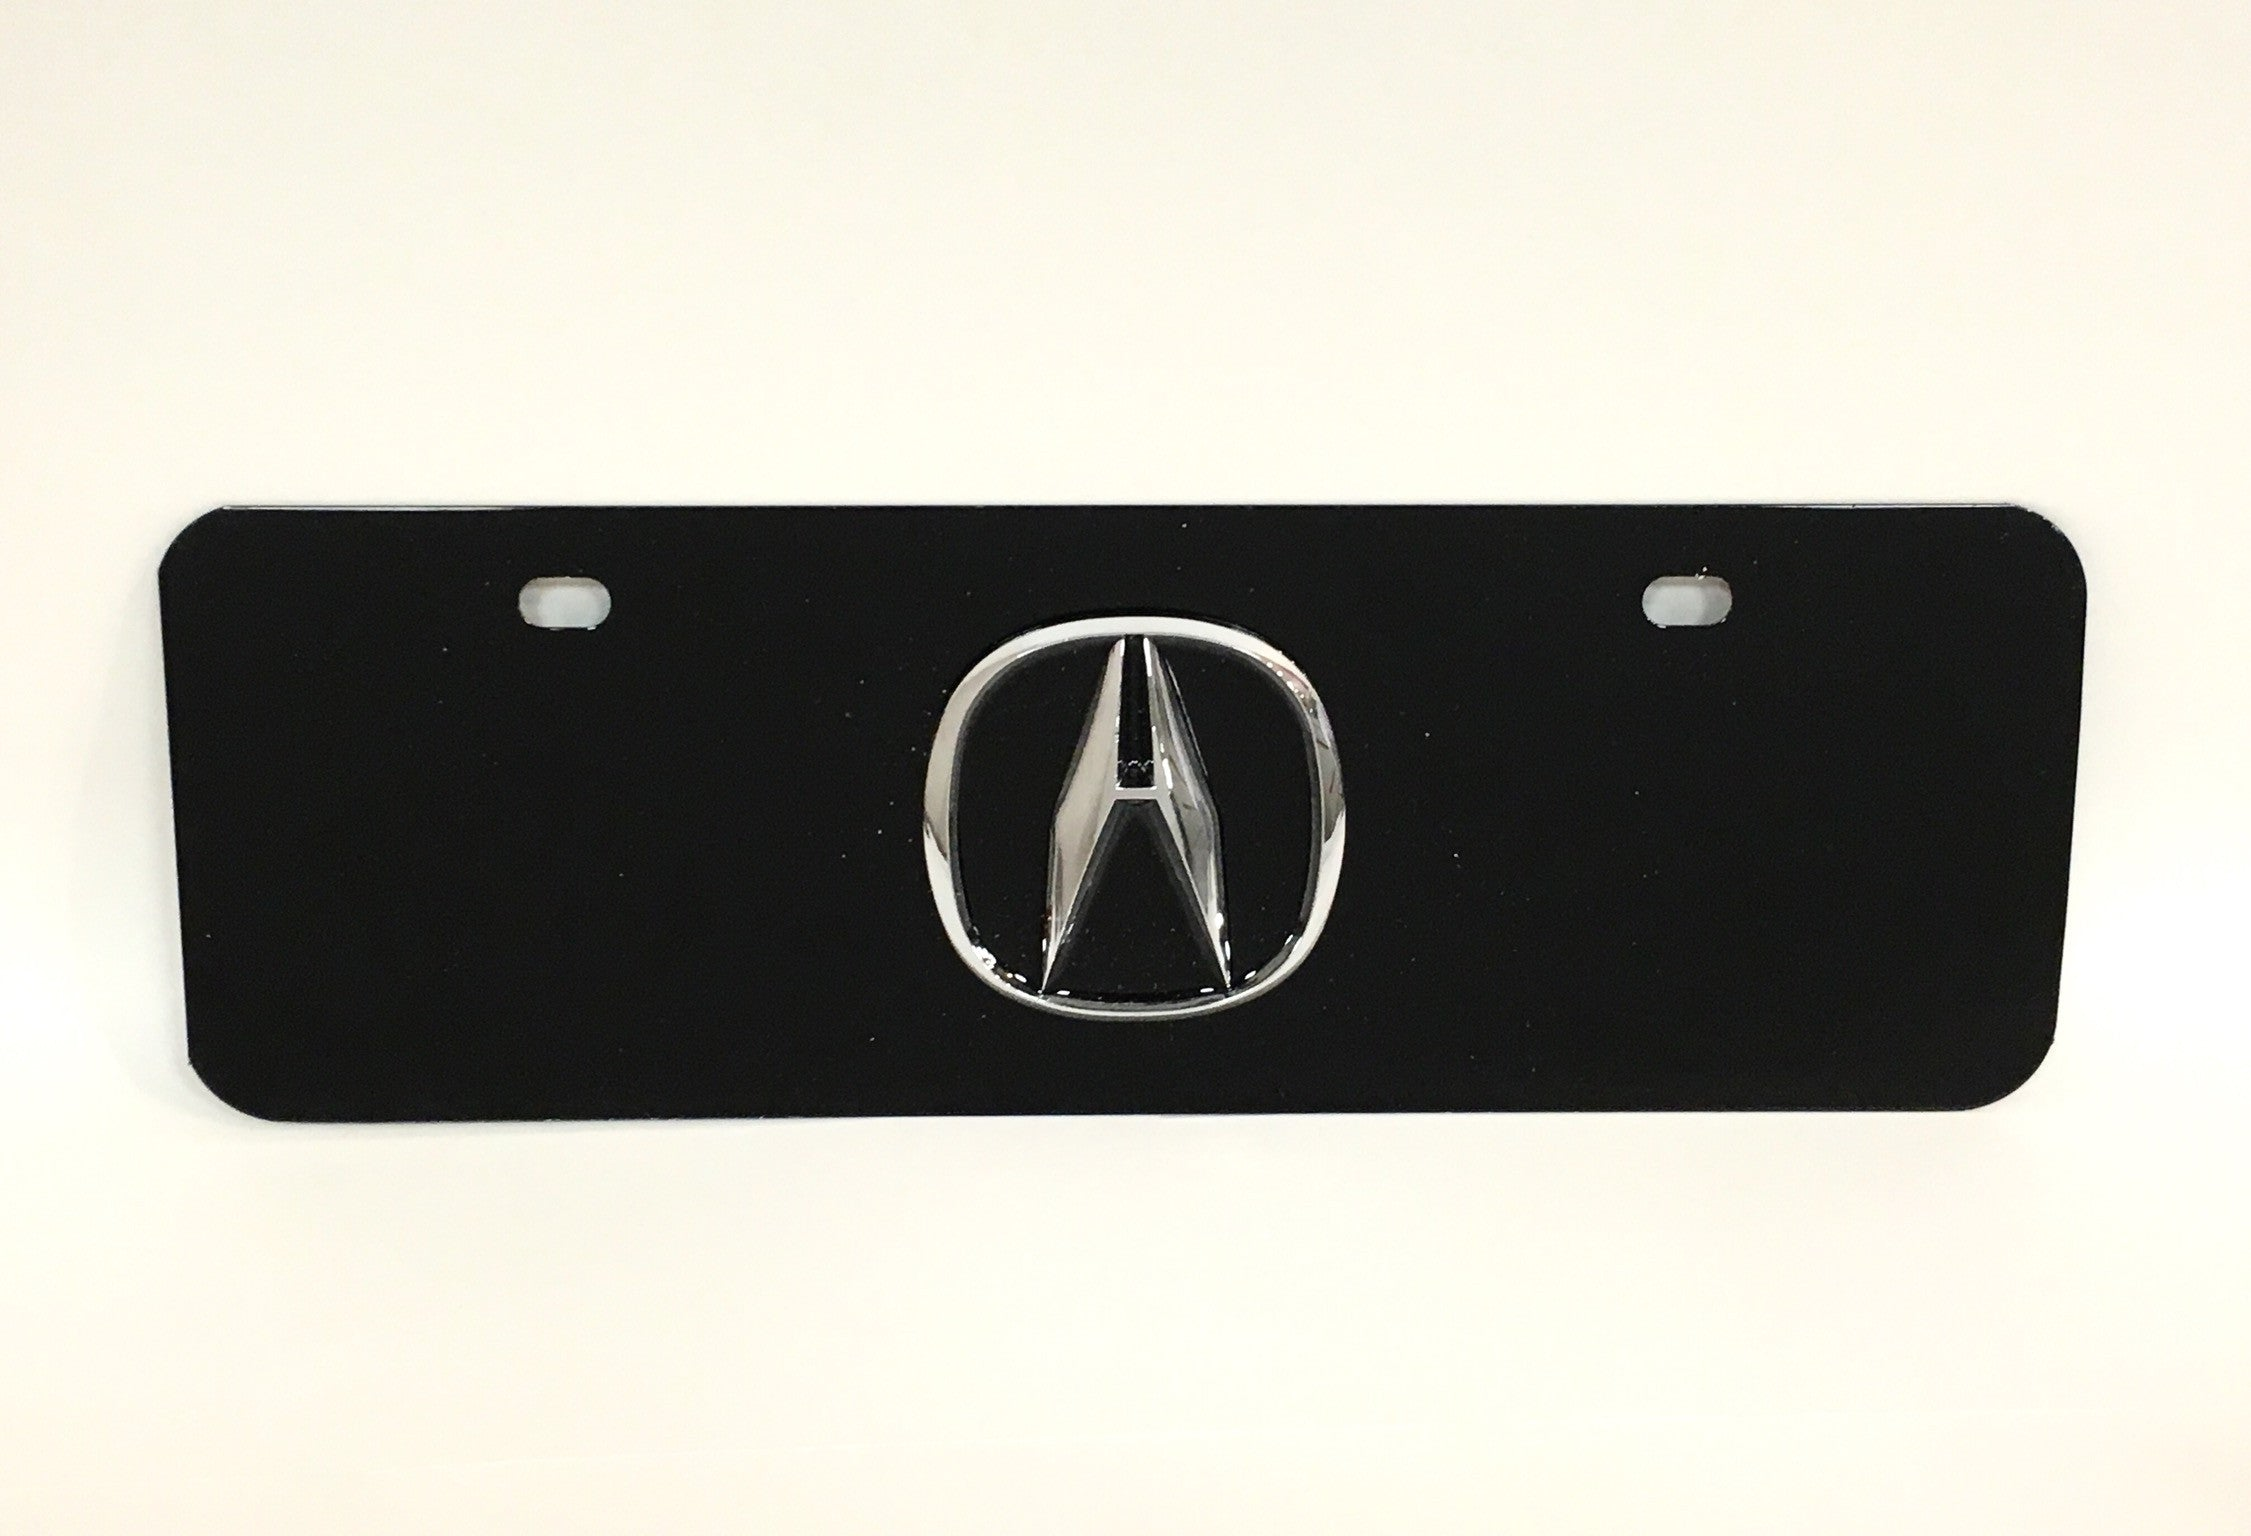 Acura Official Emblem Black Stainless Steel HalfSized License Plate - Acura emblem black